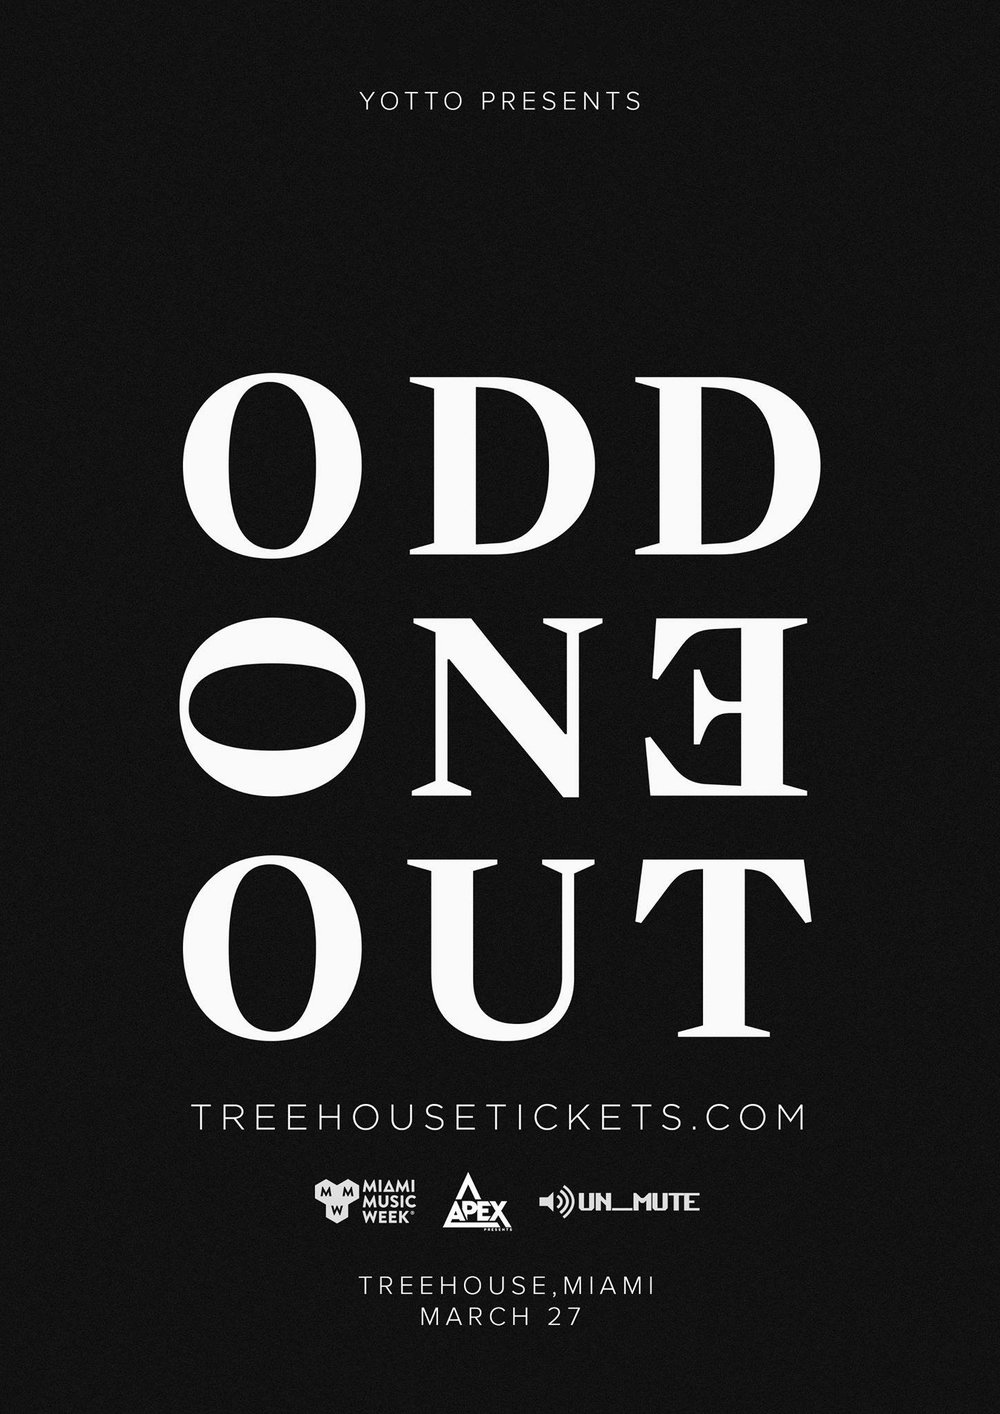 Wednesday 03/27 - Yotto presents Odd One Out -